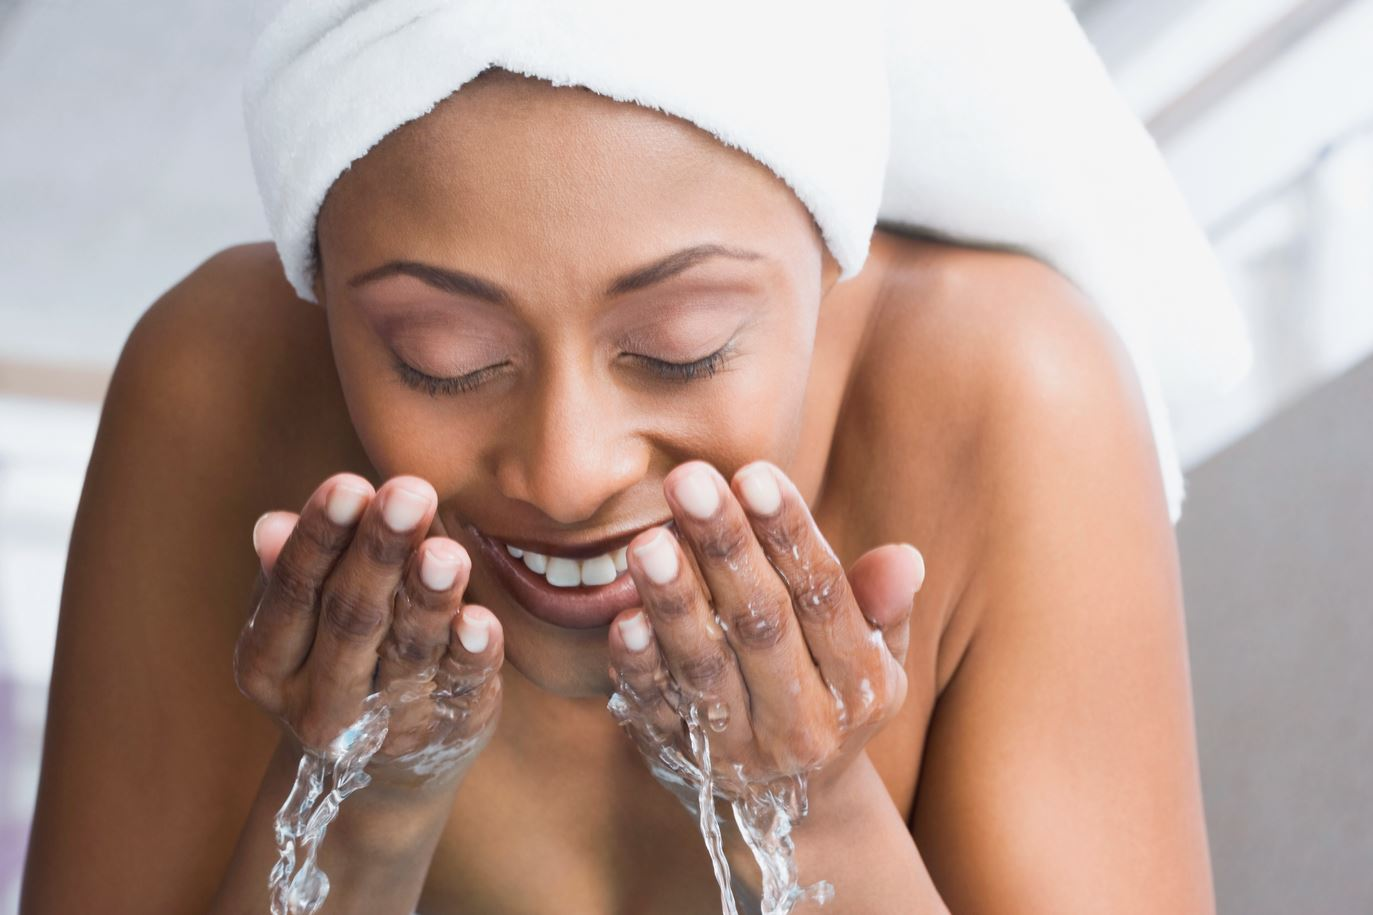 Managing Your Acne During the Winter Months